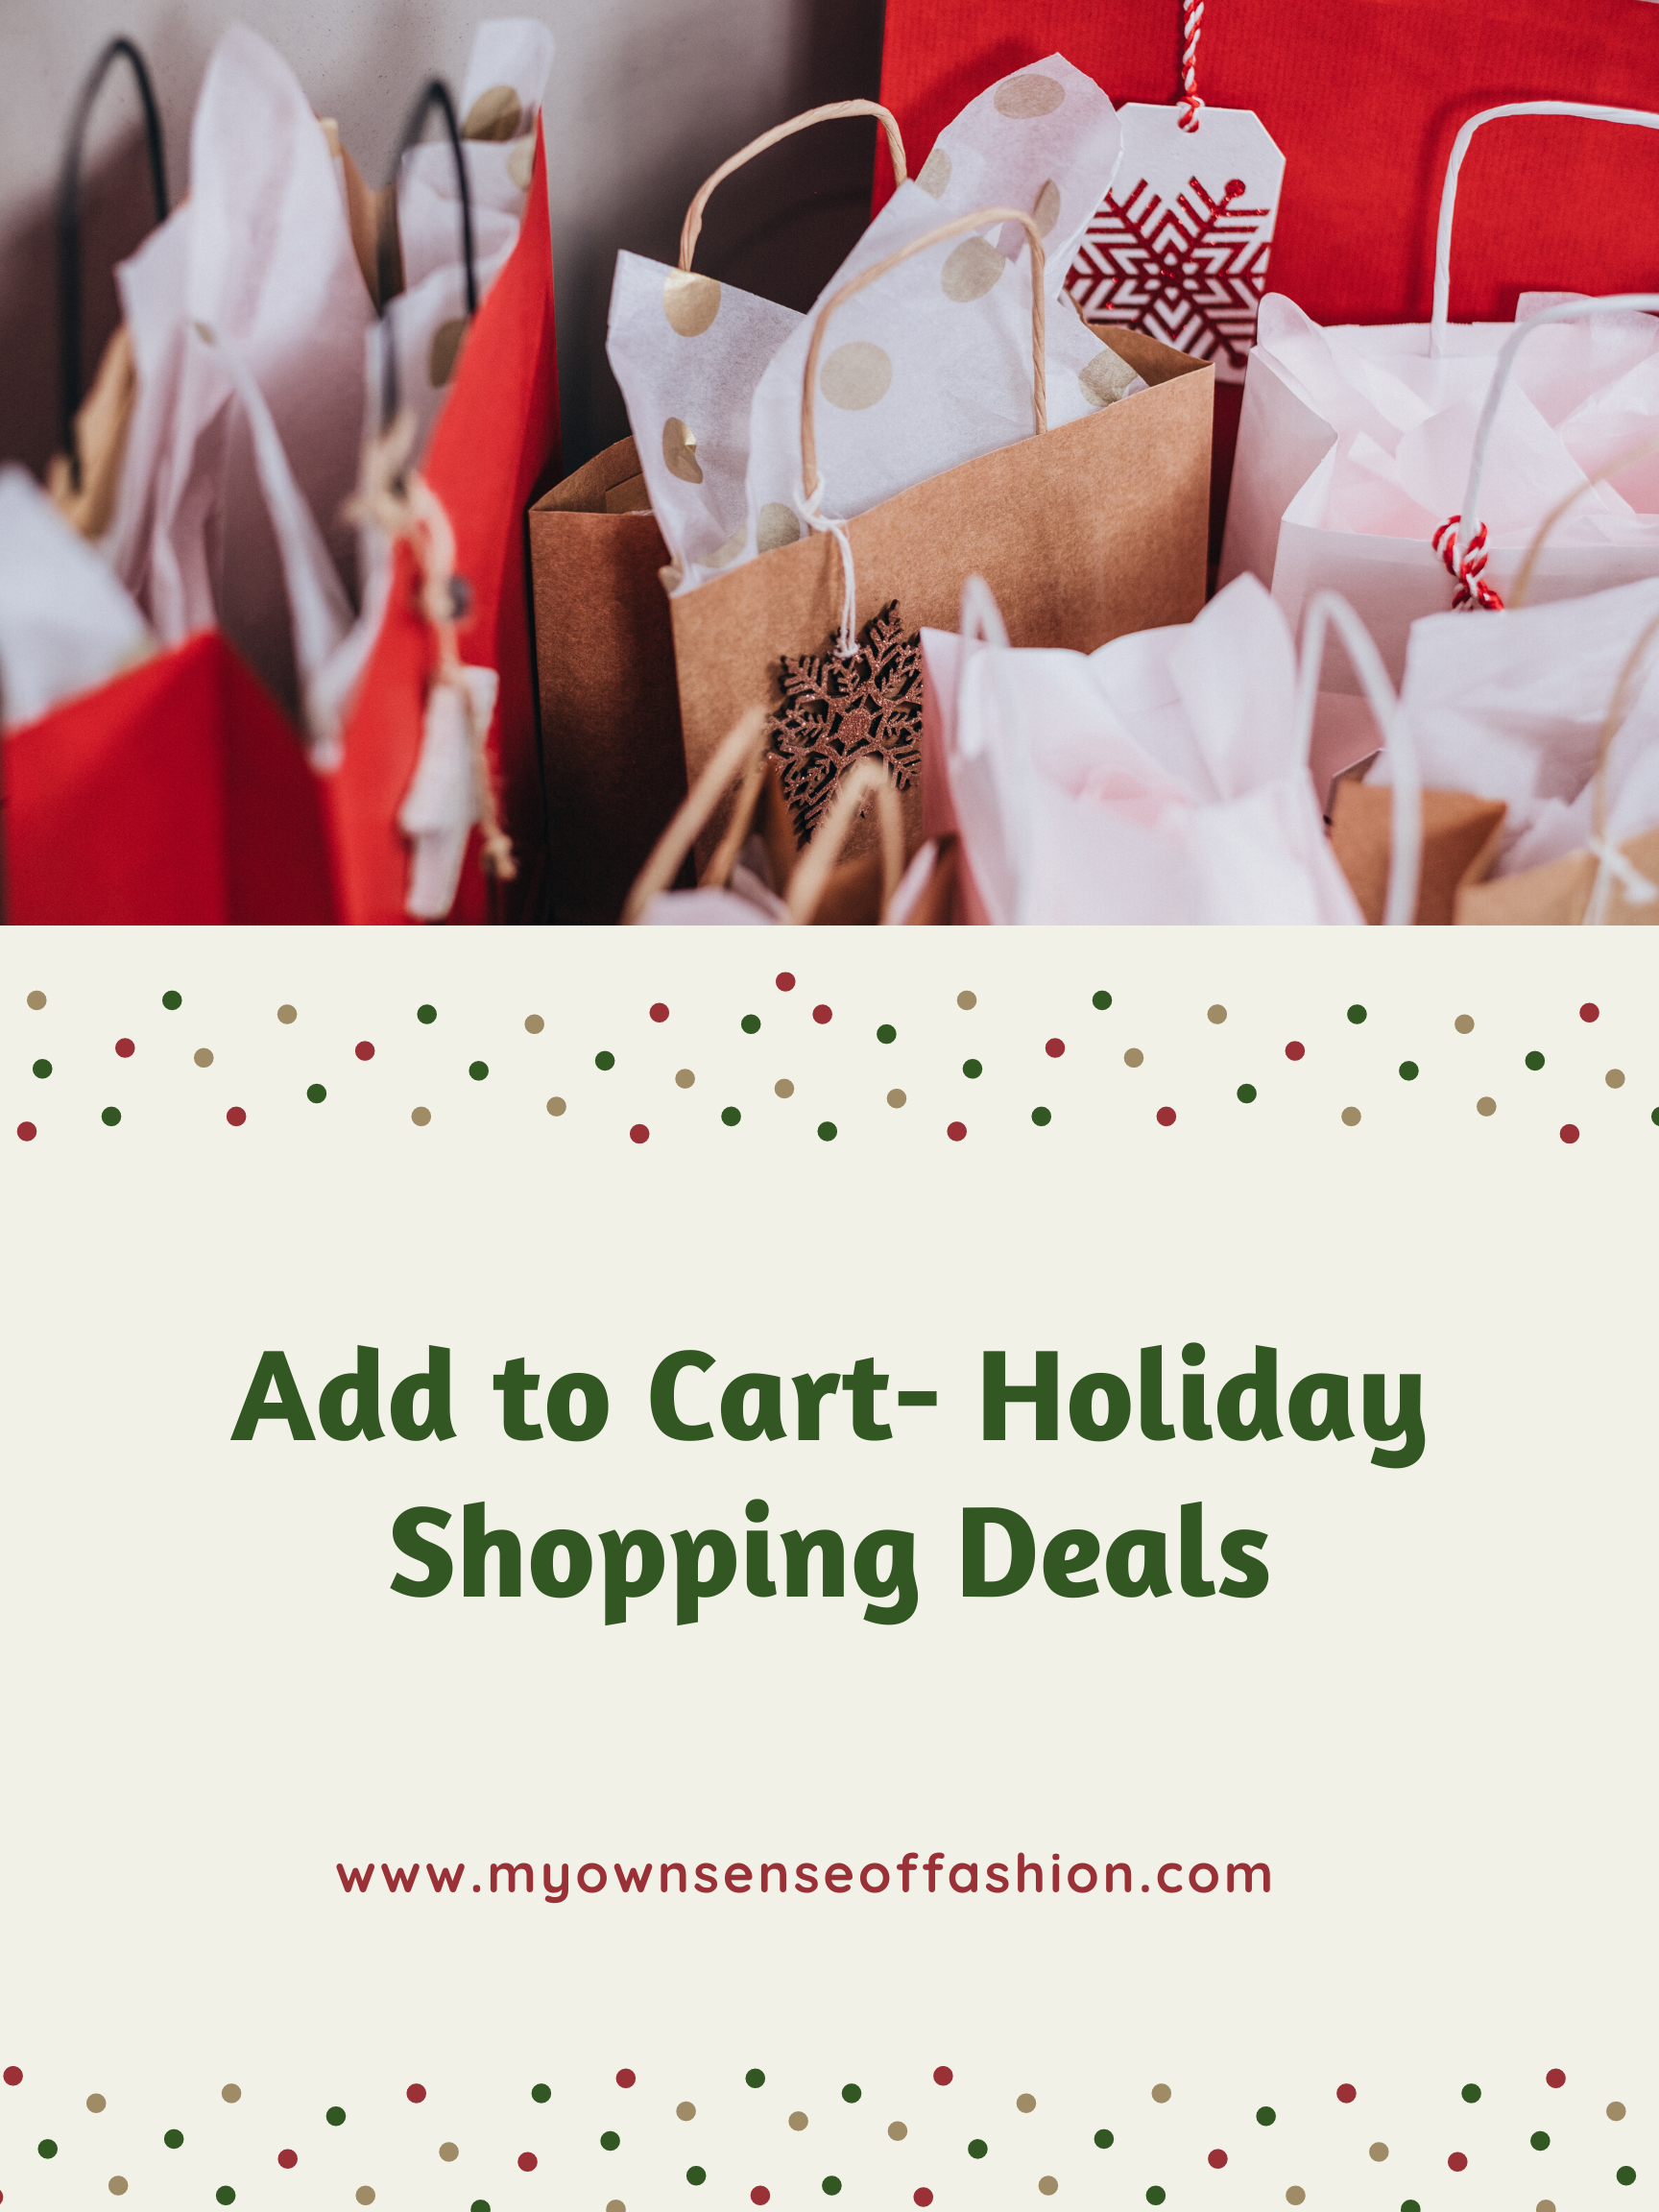 Add to Cart- Holiday Shopping Deals